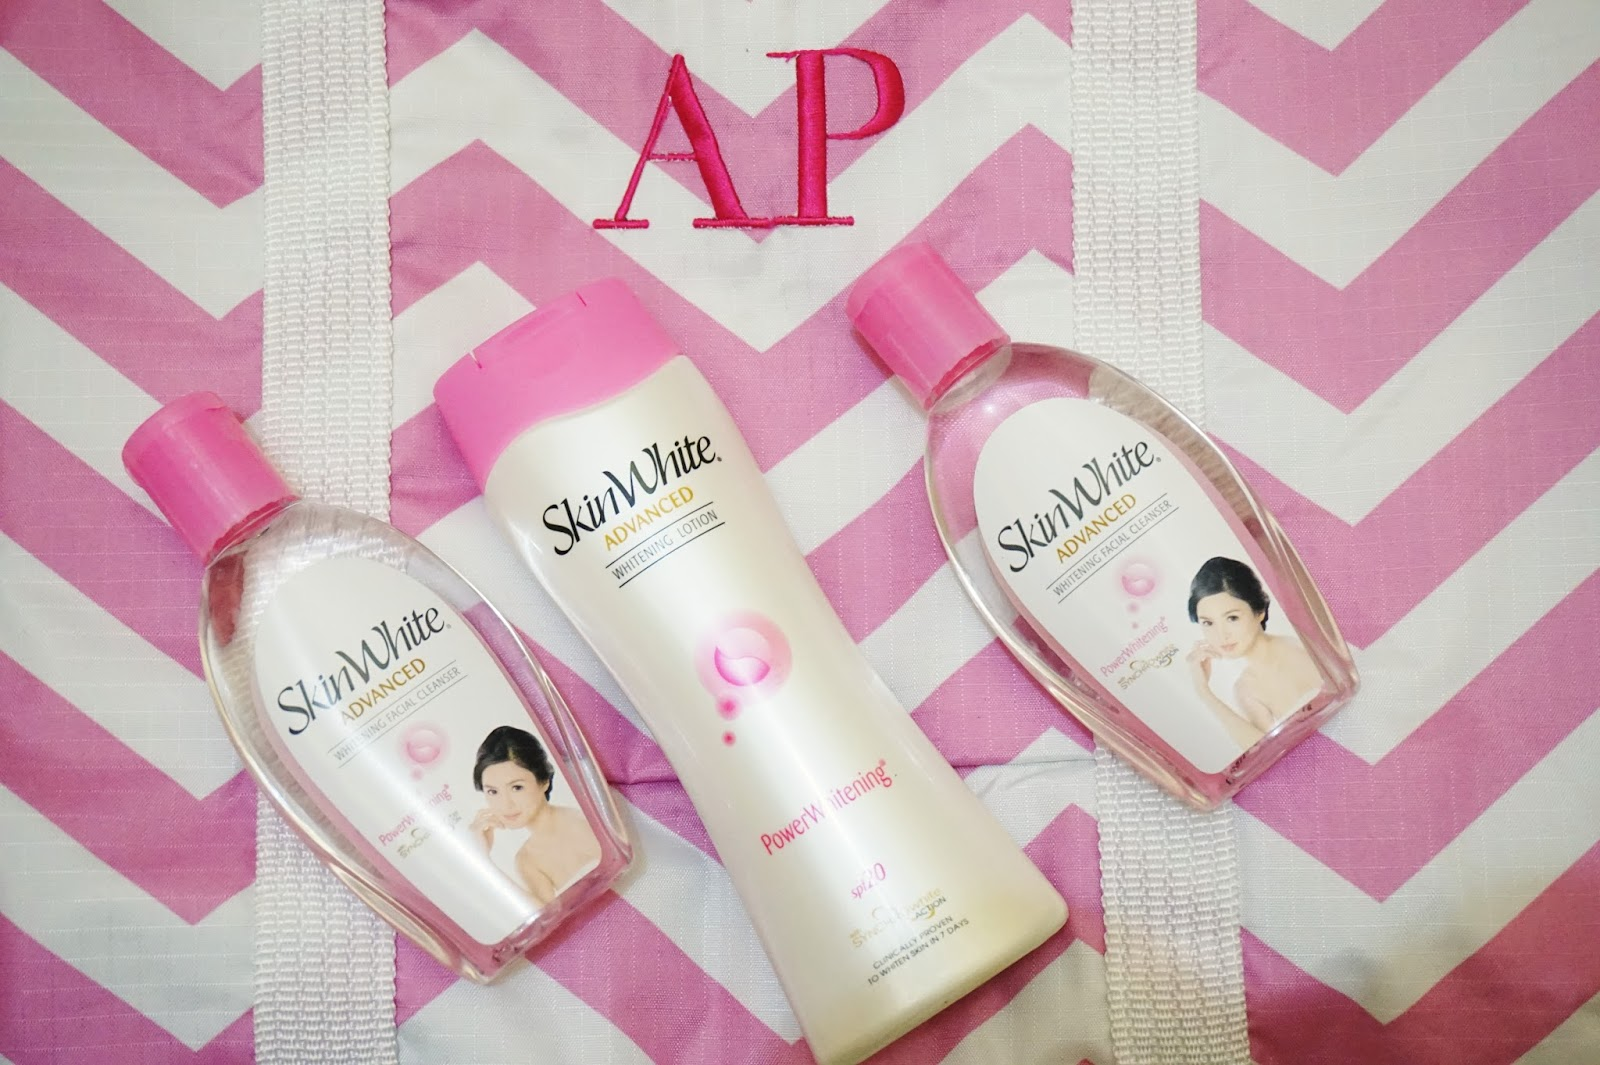 skinwhite whitening lotion and toner